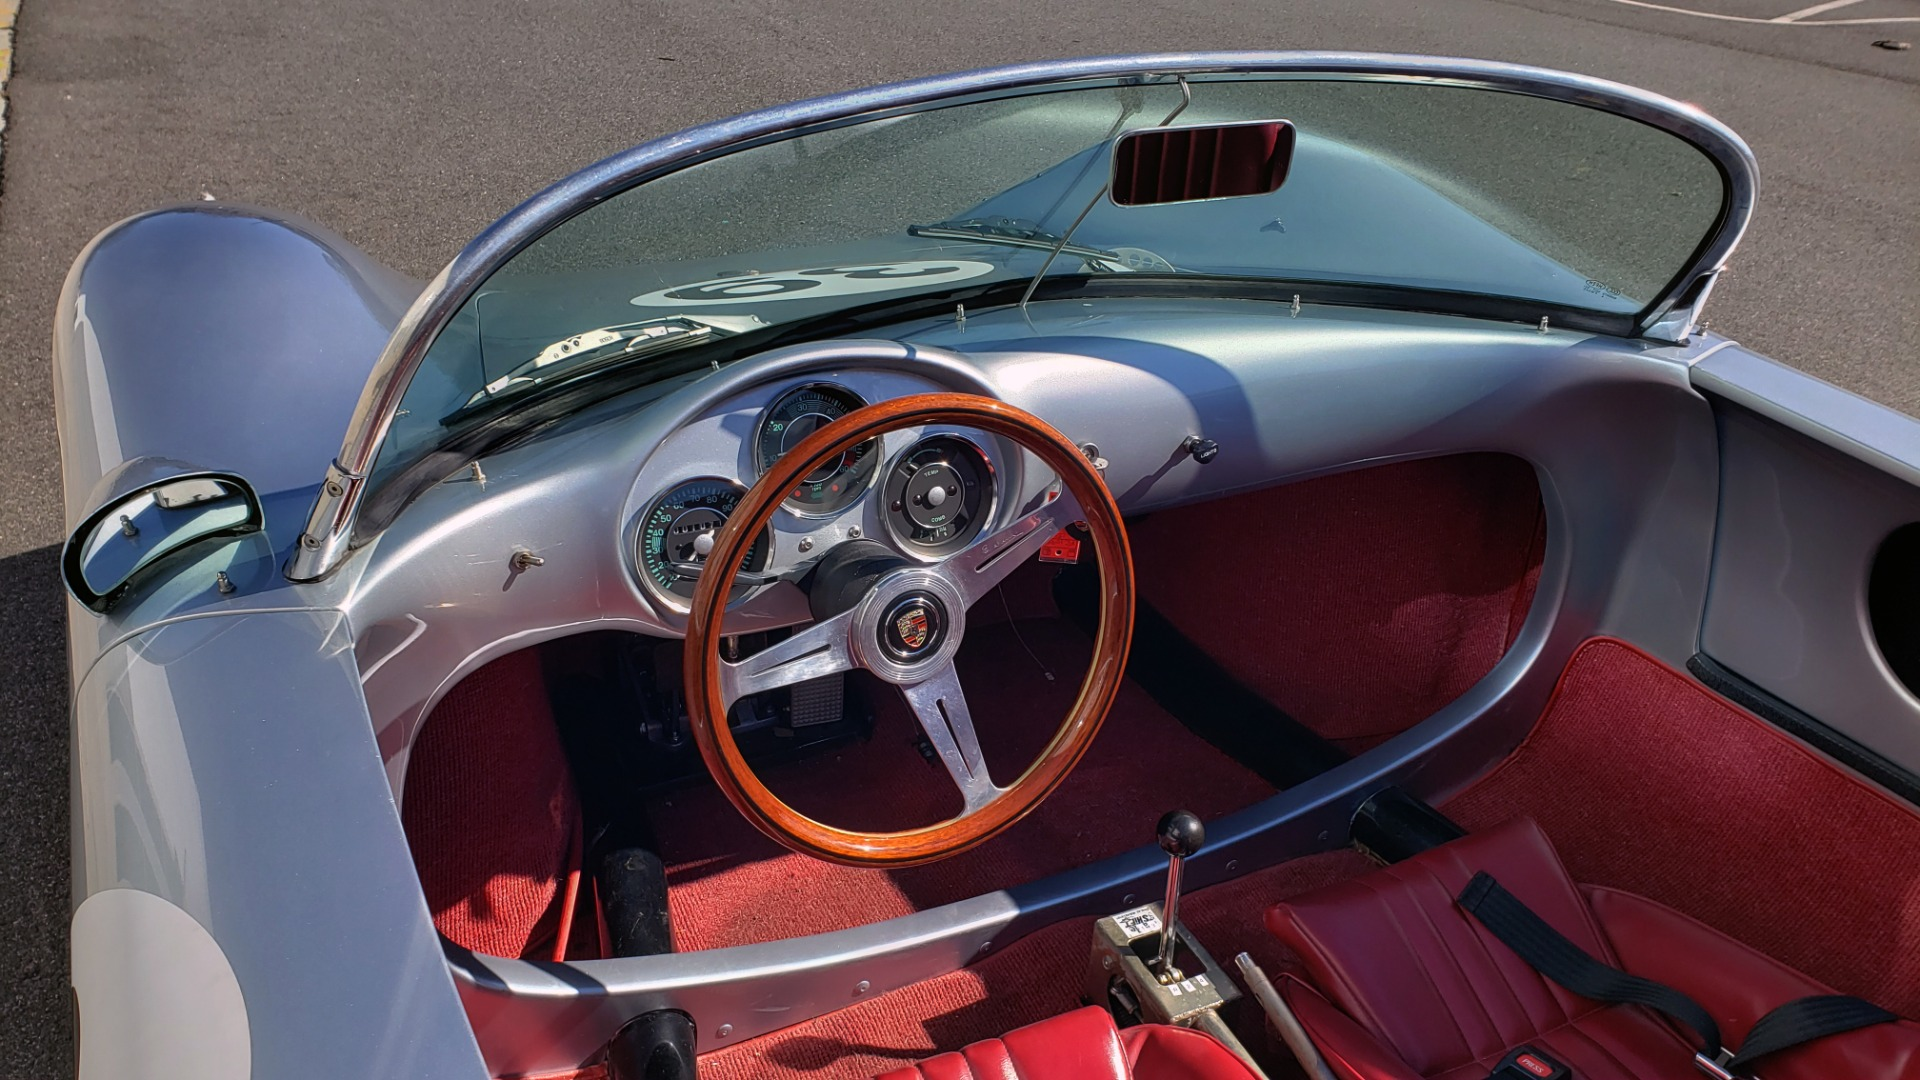 Used 1959 Porsche 718 RSK SPYDER REPLICA / 2275CC W/44MM WEBER (160HP) / 4-SPD MANUAL for sale $39,999 at Formula Imports in Charlotte NC 28227 18